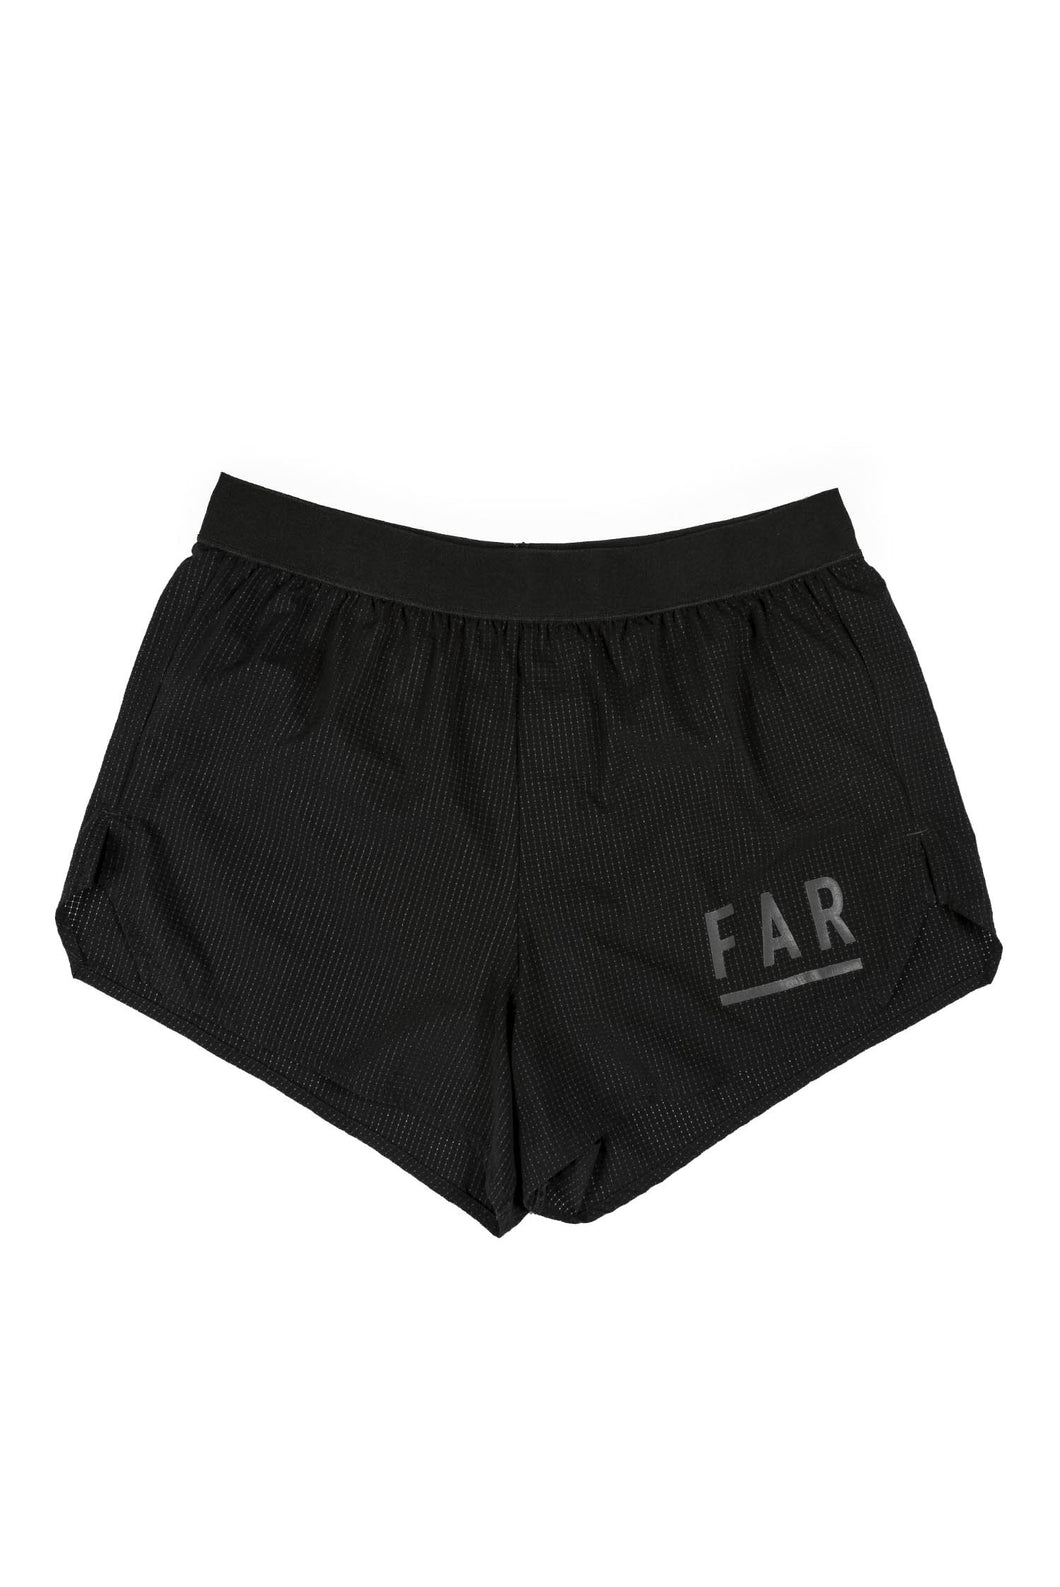 Ultralight Running Short - Black